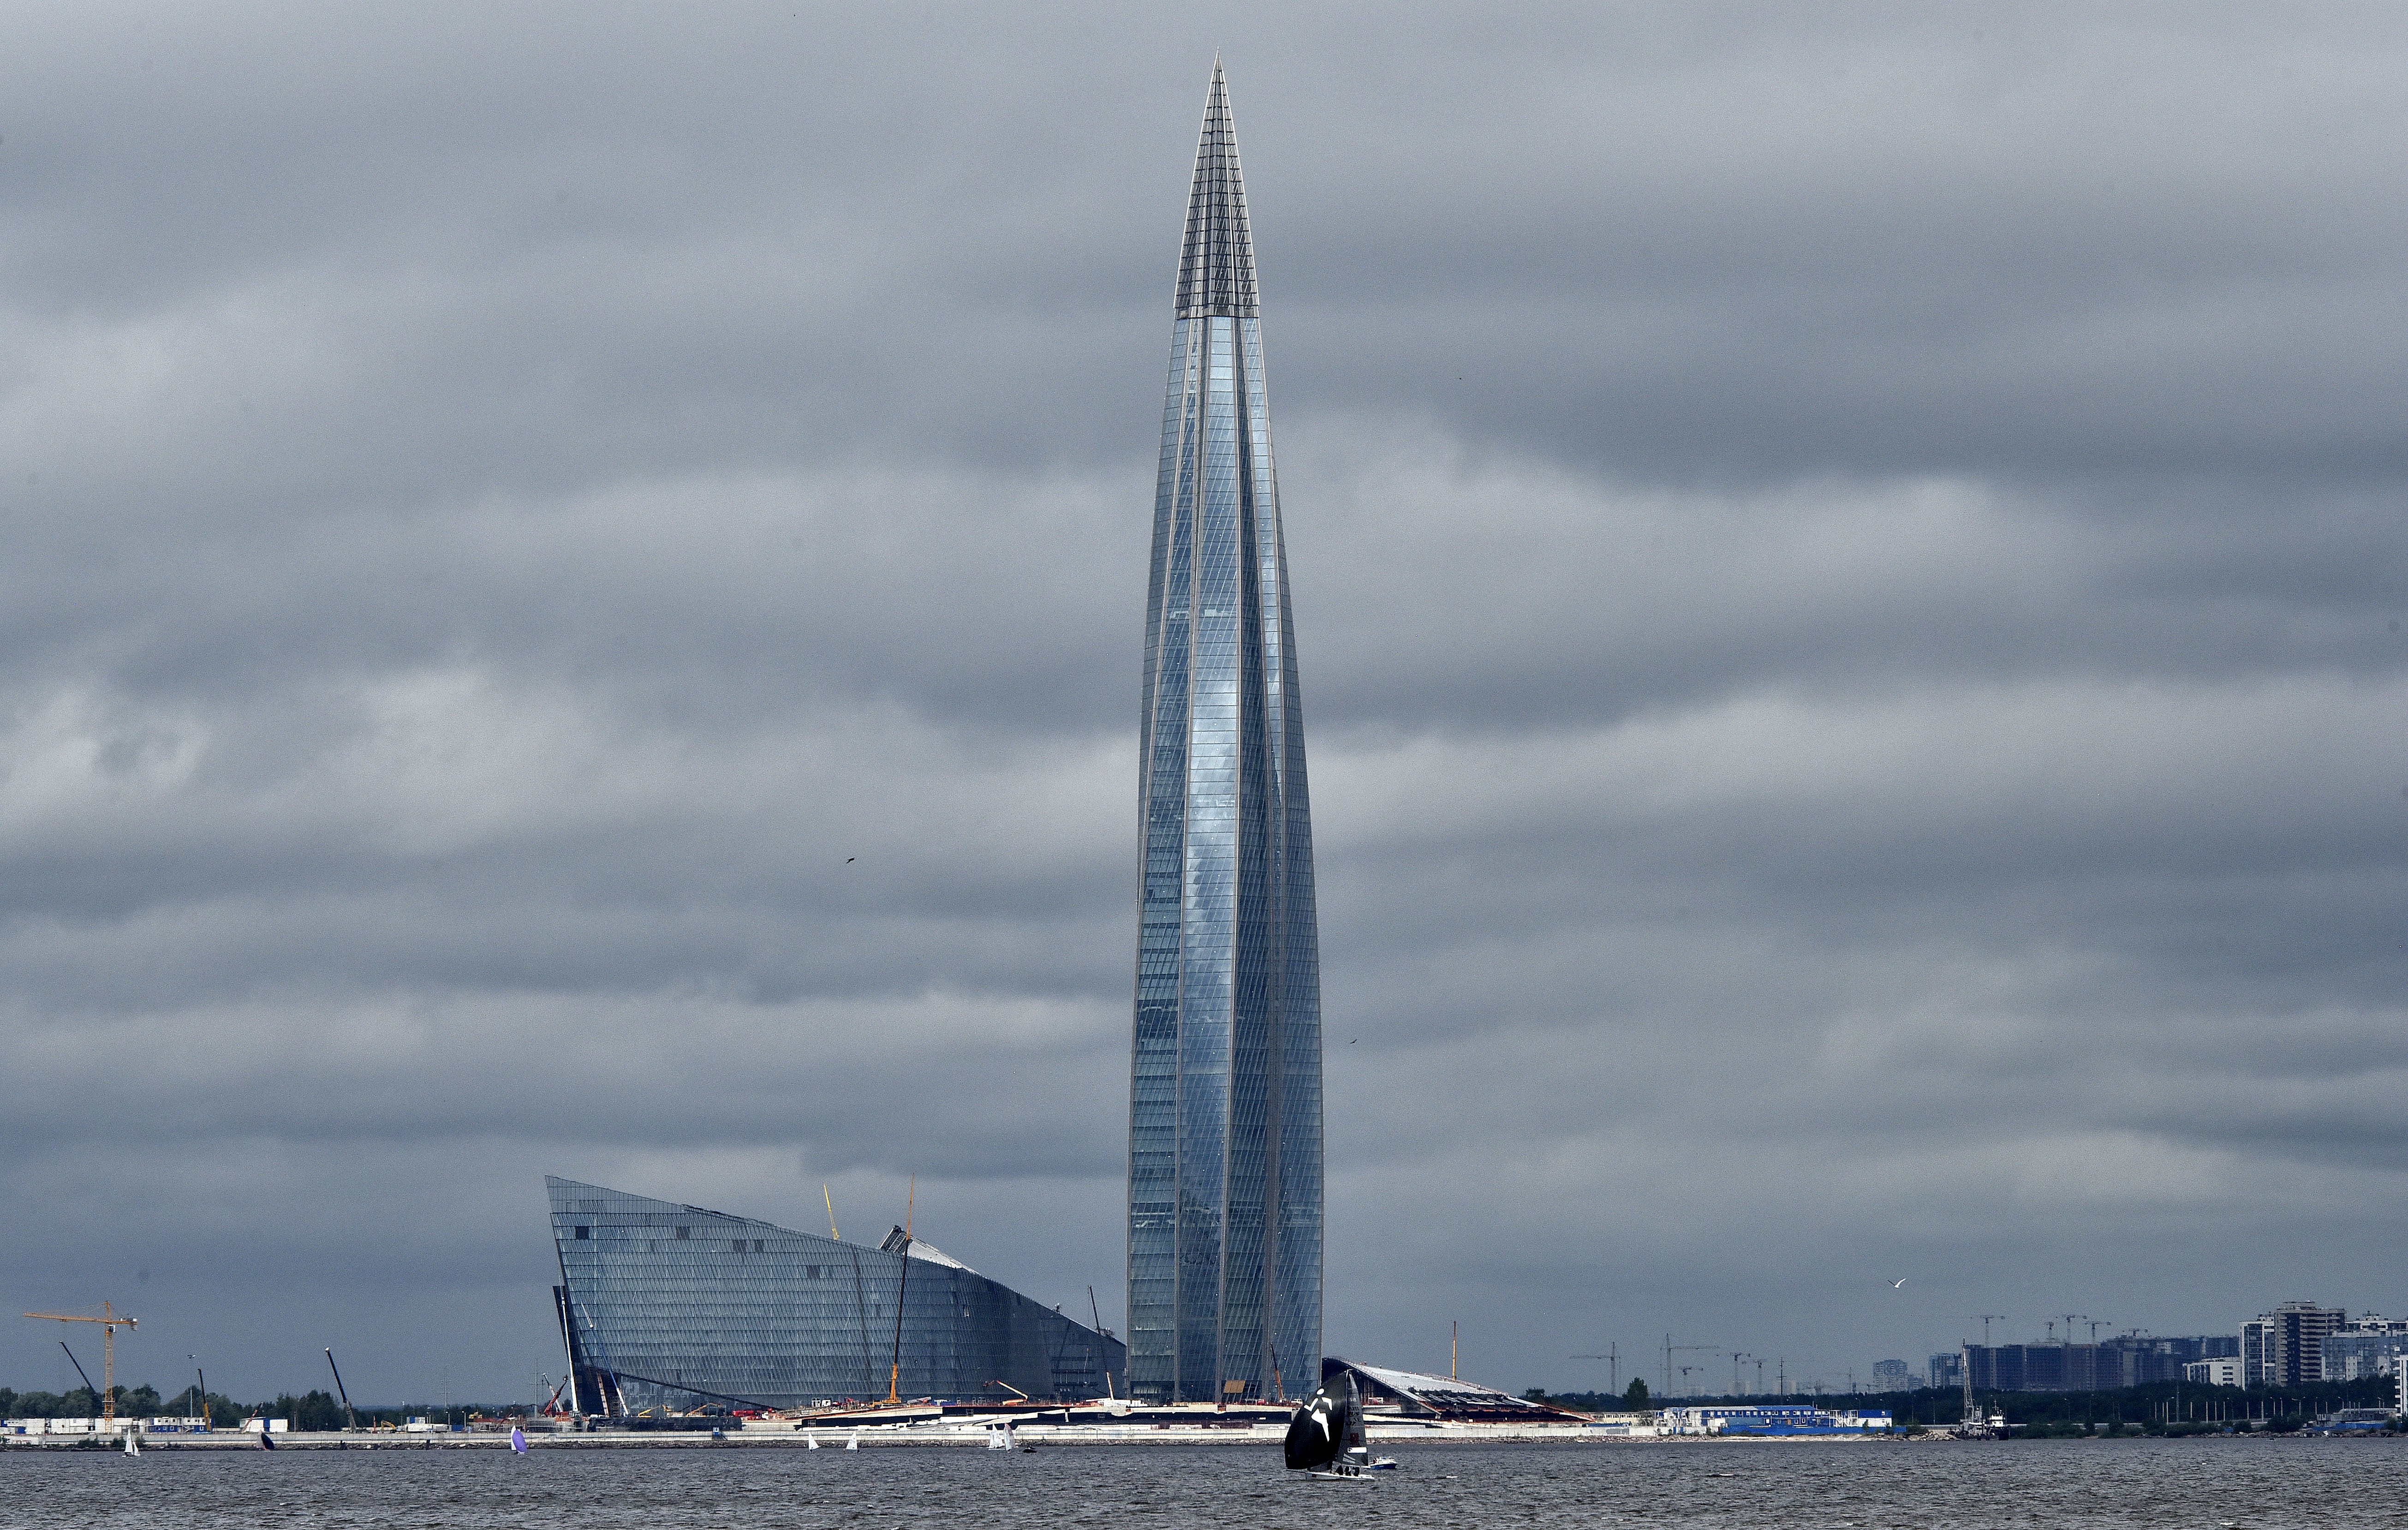 The new Lakhta Center is pictured in St. Petersburg, Russia, Sunday, July 8, 2018. The new headquarter of Russian energy company Gazprom is with 462 meters the tallest building in Europe. (AP Photo/Martin Meissner)